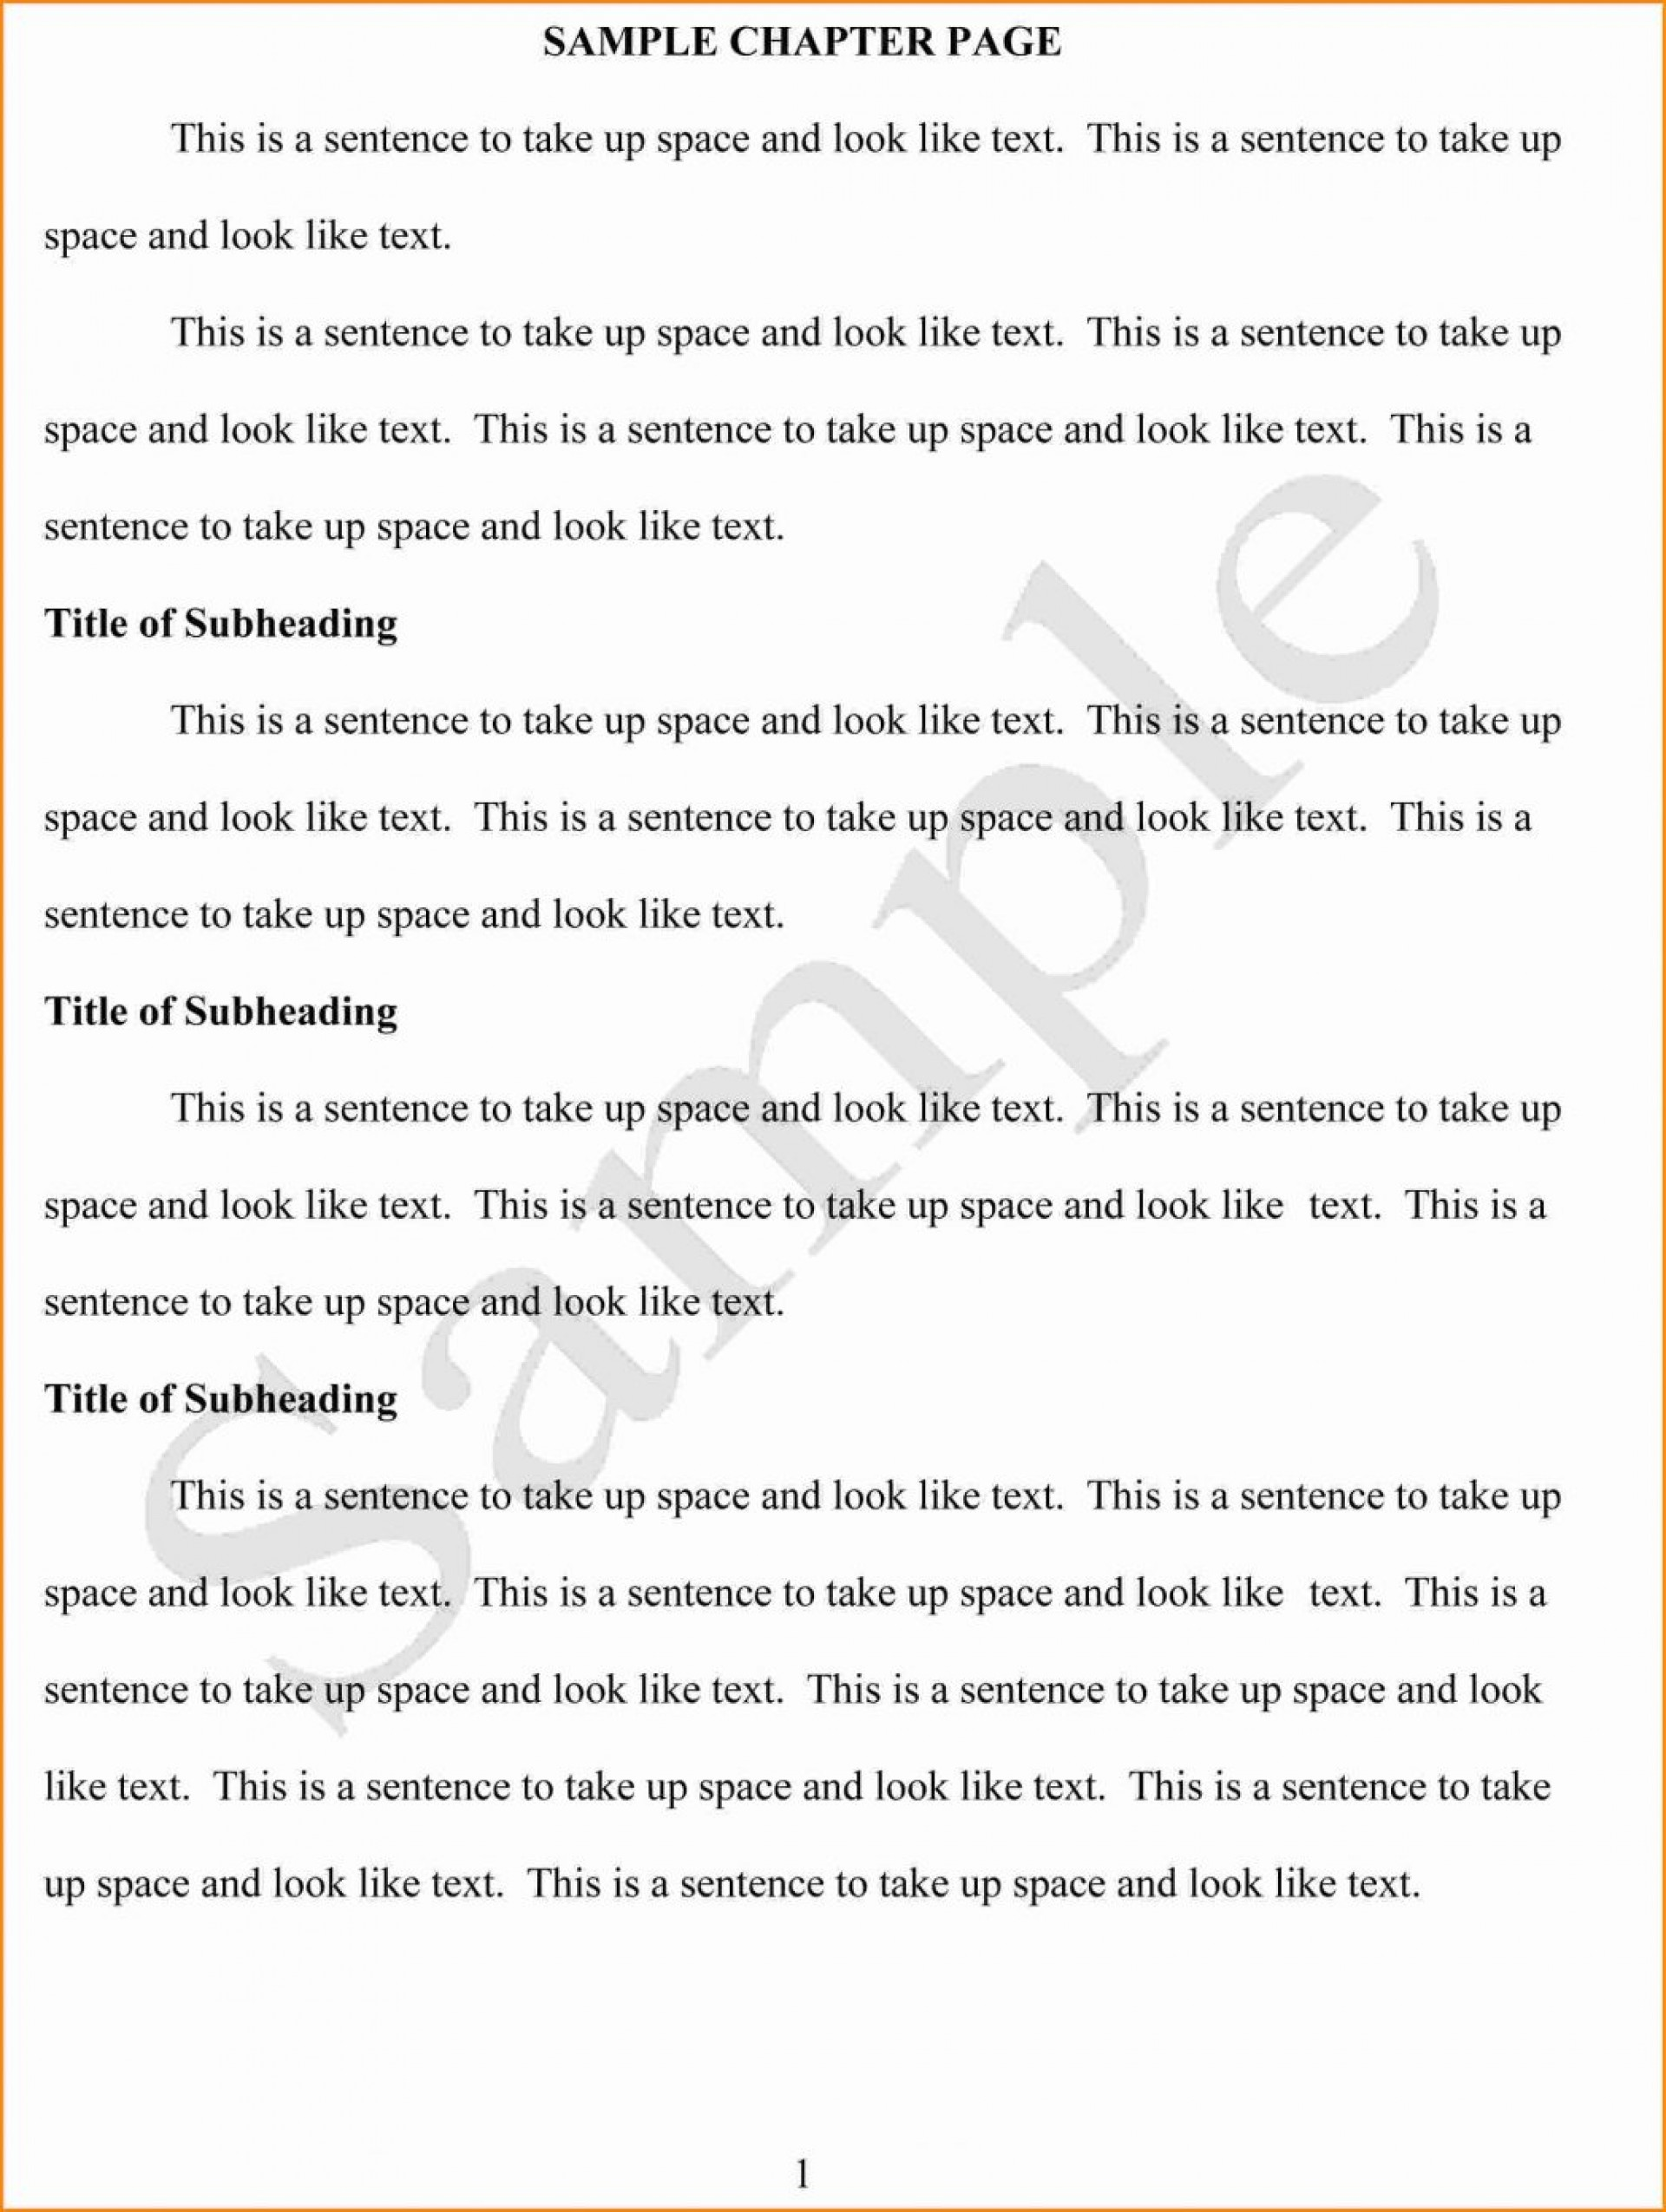 008 Parvana Essay Sample Thesis Statement Ssat Writing Promptss For Essays Psych Prompt New Sat 1048x1392 Surprising Pdf 2017 1920